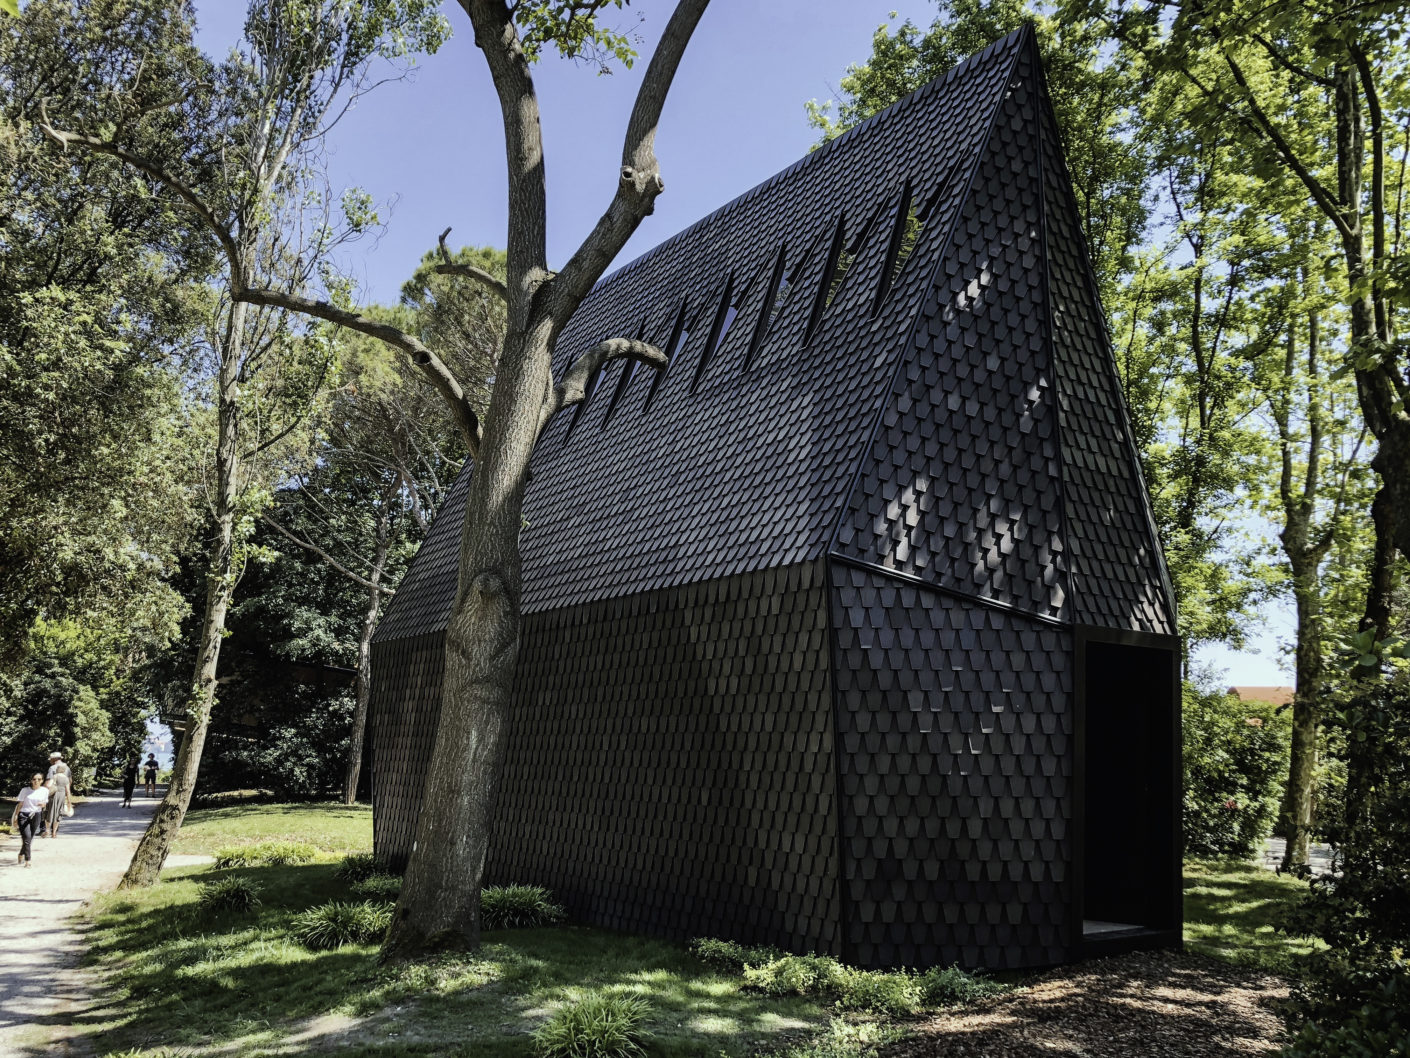 The Asplund Pavilion documents the Skogskappellet, which served as inspiration for the architects involved in the Biennale project.